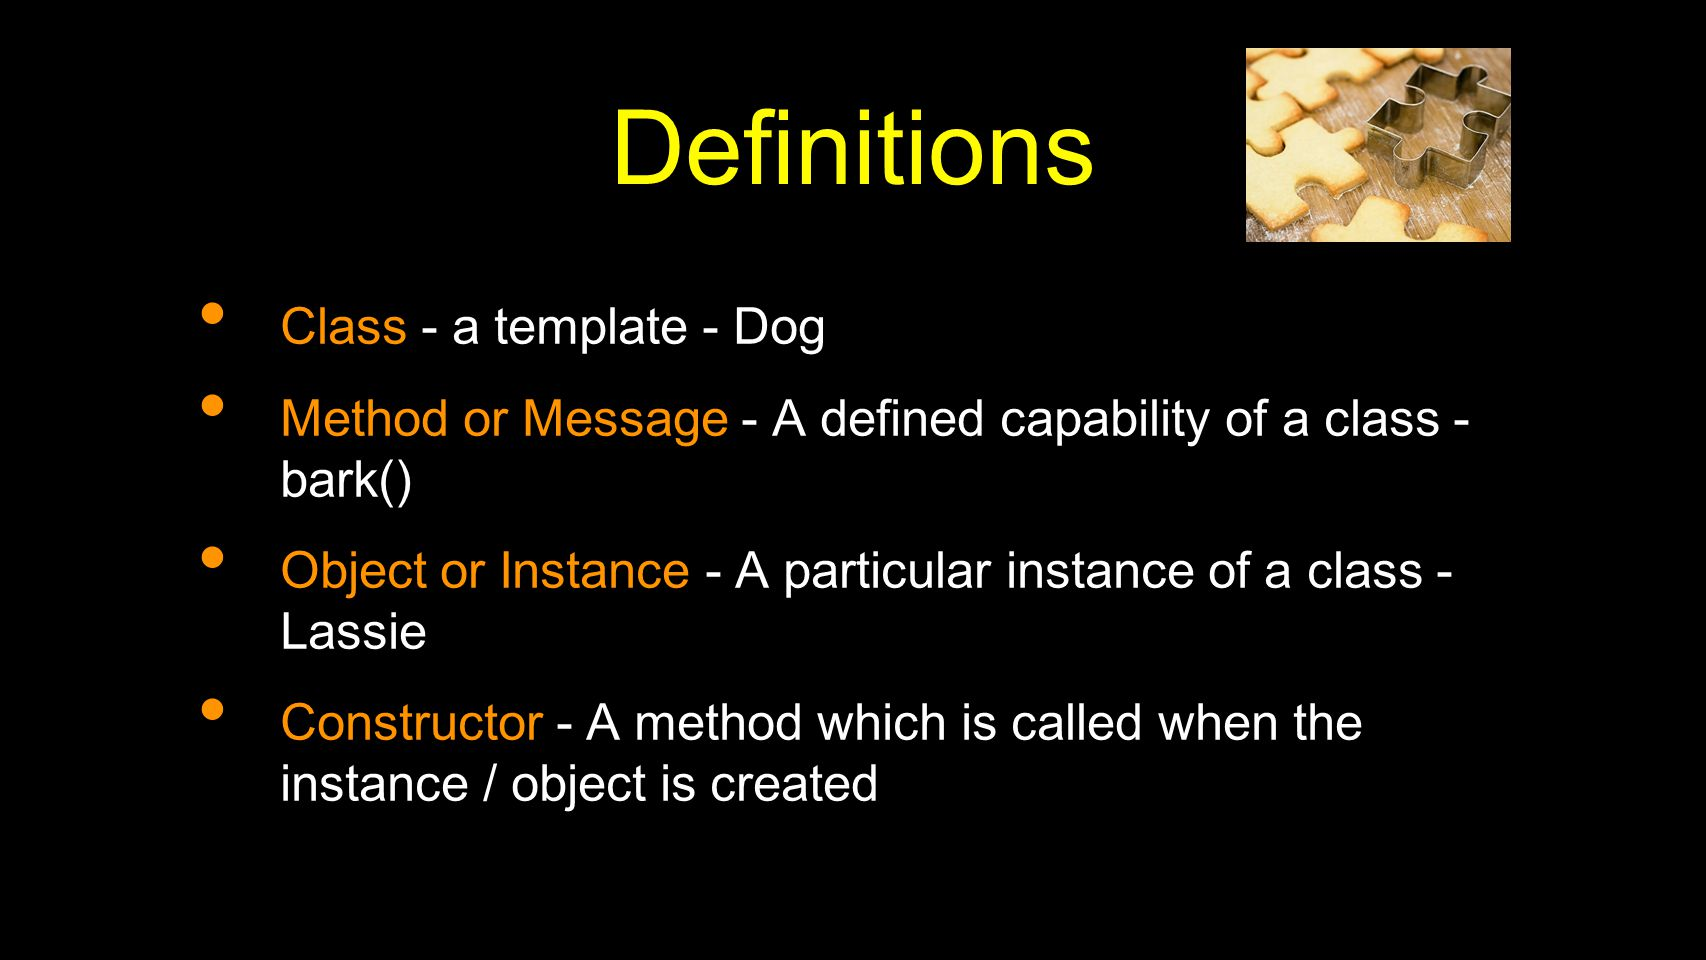 Definitions Class - a template - Dog Method or Message - A defined capability of a class - bark() Object or Instance - A particular instance of a class - Lassie Constructor - A method which is called when the instance / object is created